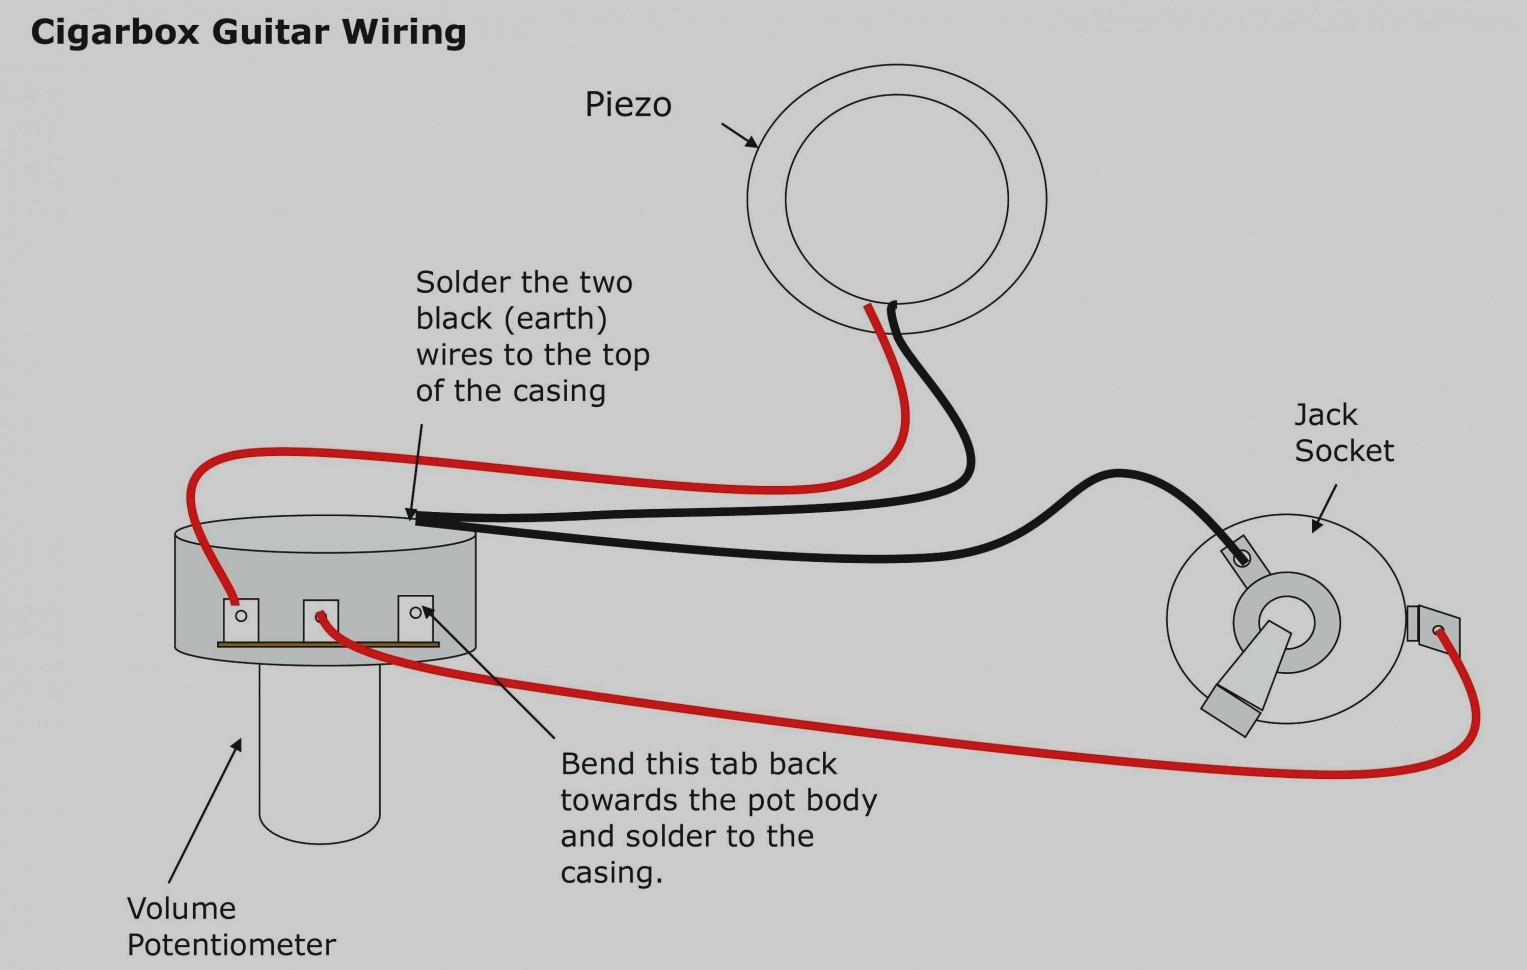 Electric Guitar Input Jack Wiring - Data Wiring Diagram Today - Electric Guitar Wiring Diagram